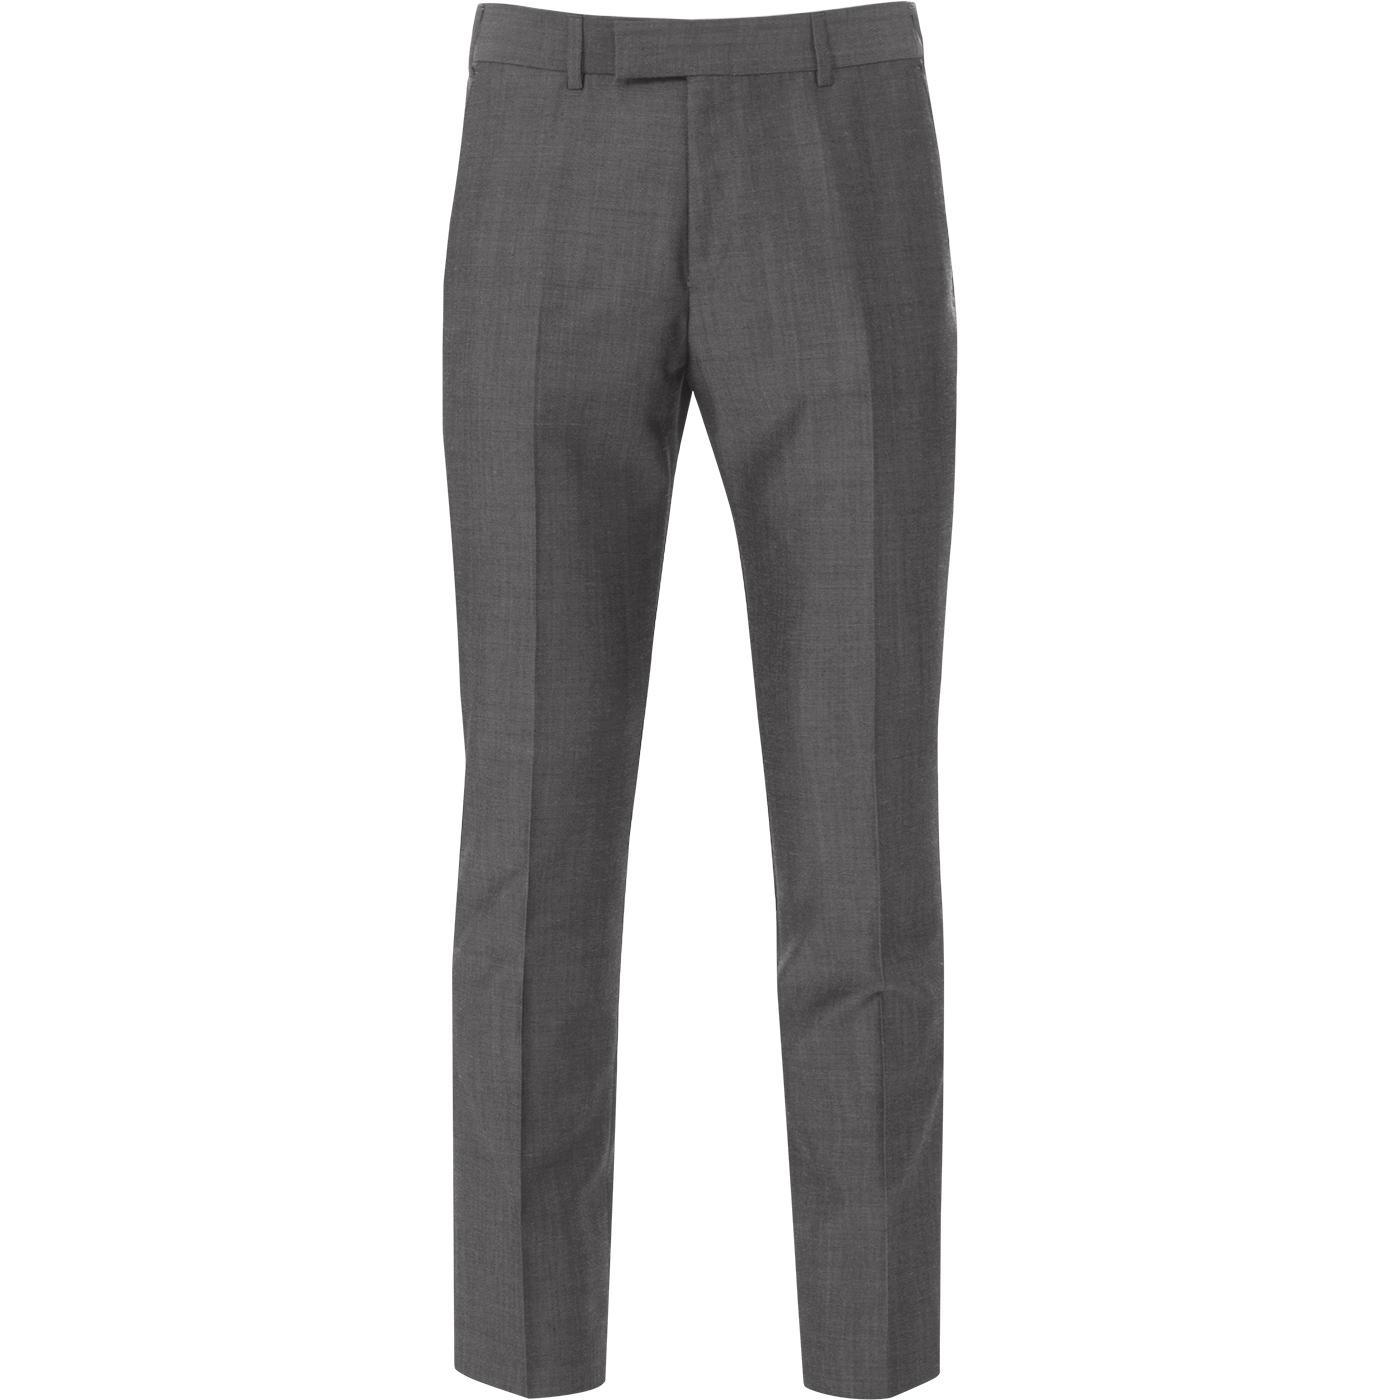 MADCAP ENGLAND Mohair Tonic Suit Trousers (Silver)